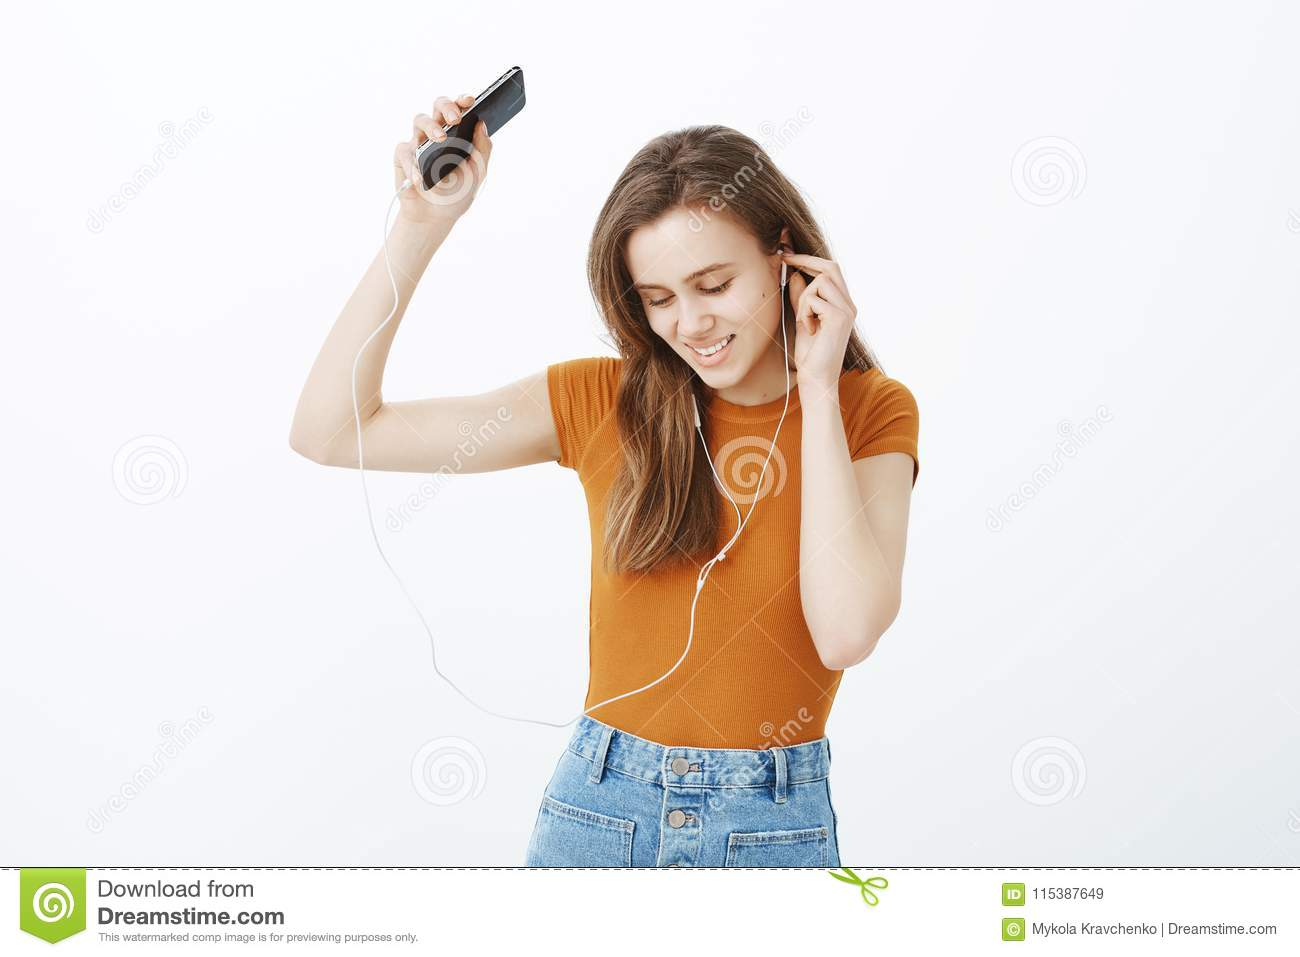 Boosting happy mood with favorite songs. Relaxed charming european female student in colorful clothes, raising hand with